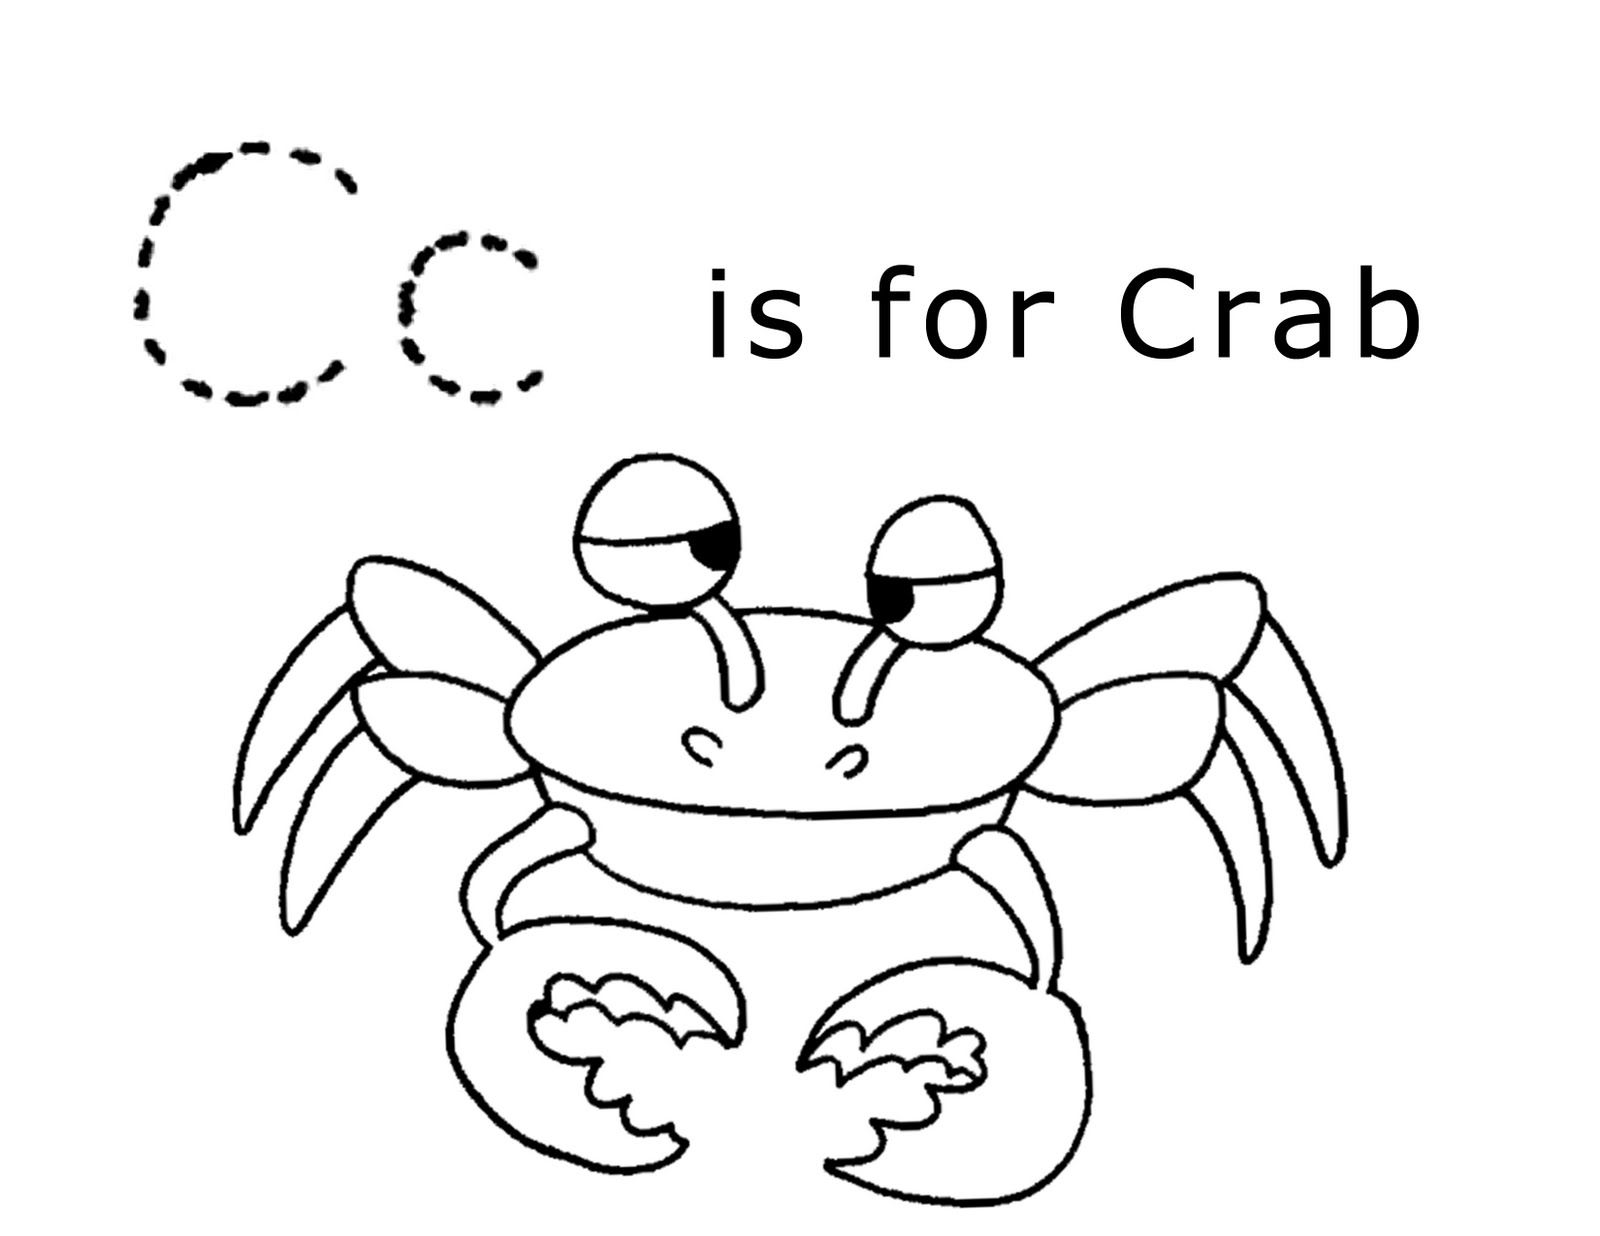 Coloring Pages The Letter C Coloring Pages letter c coloring page eassume com eassume